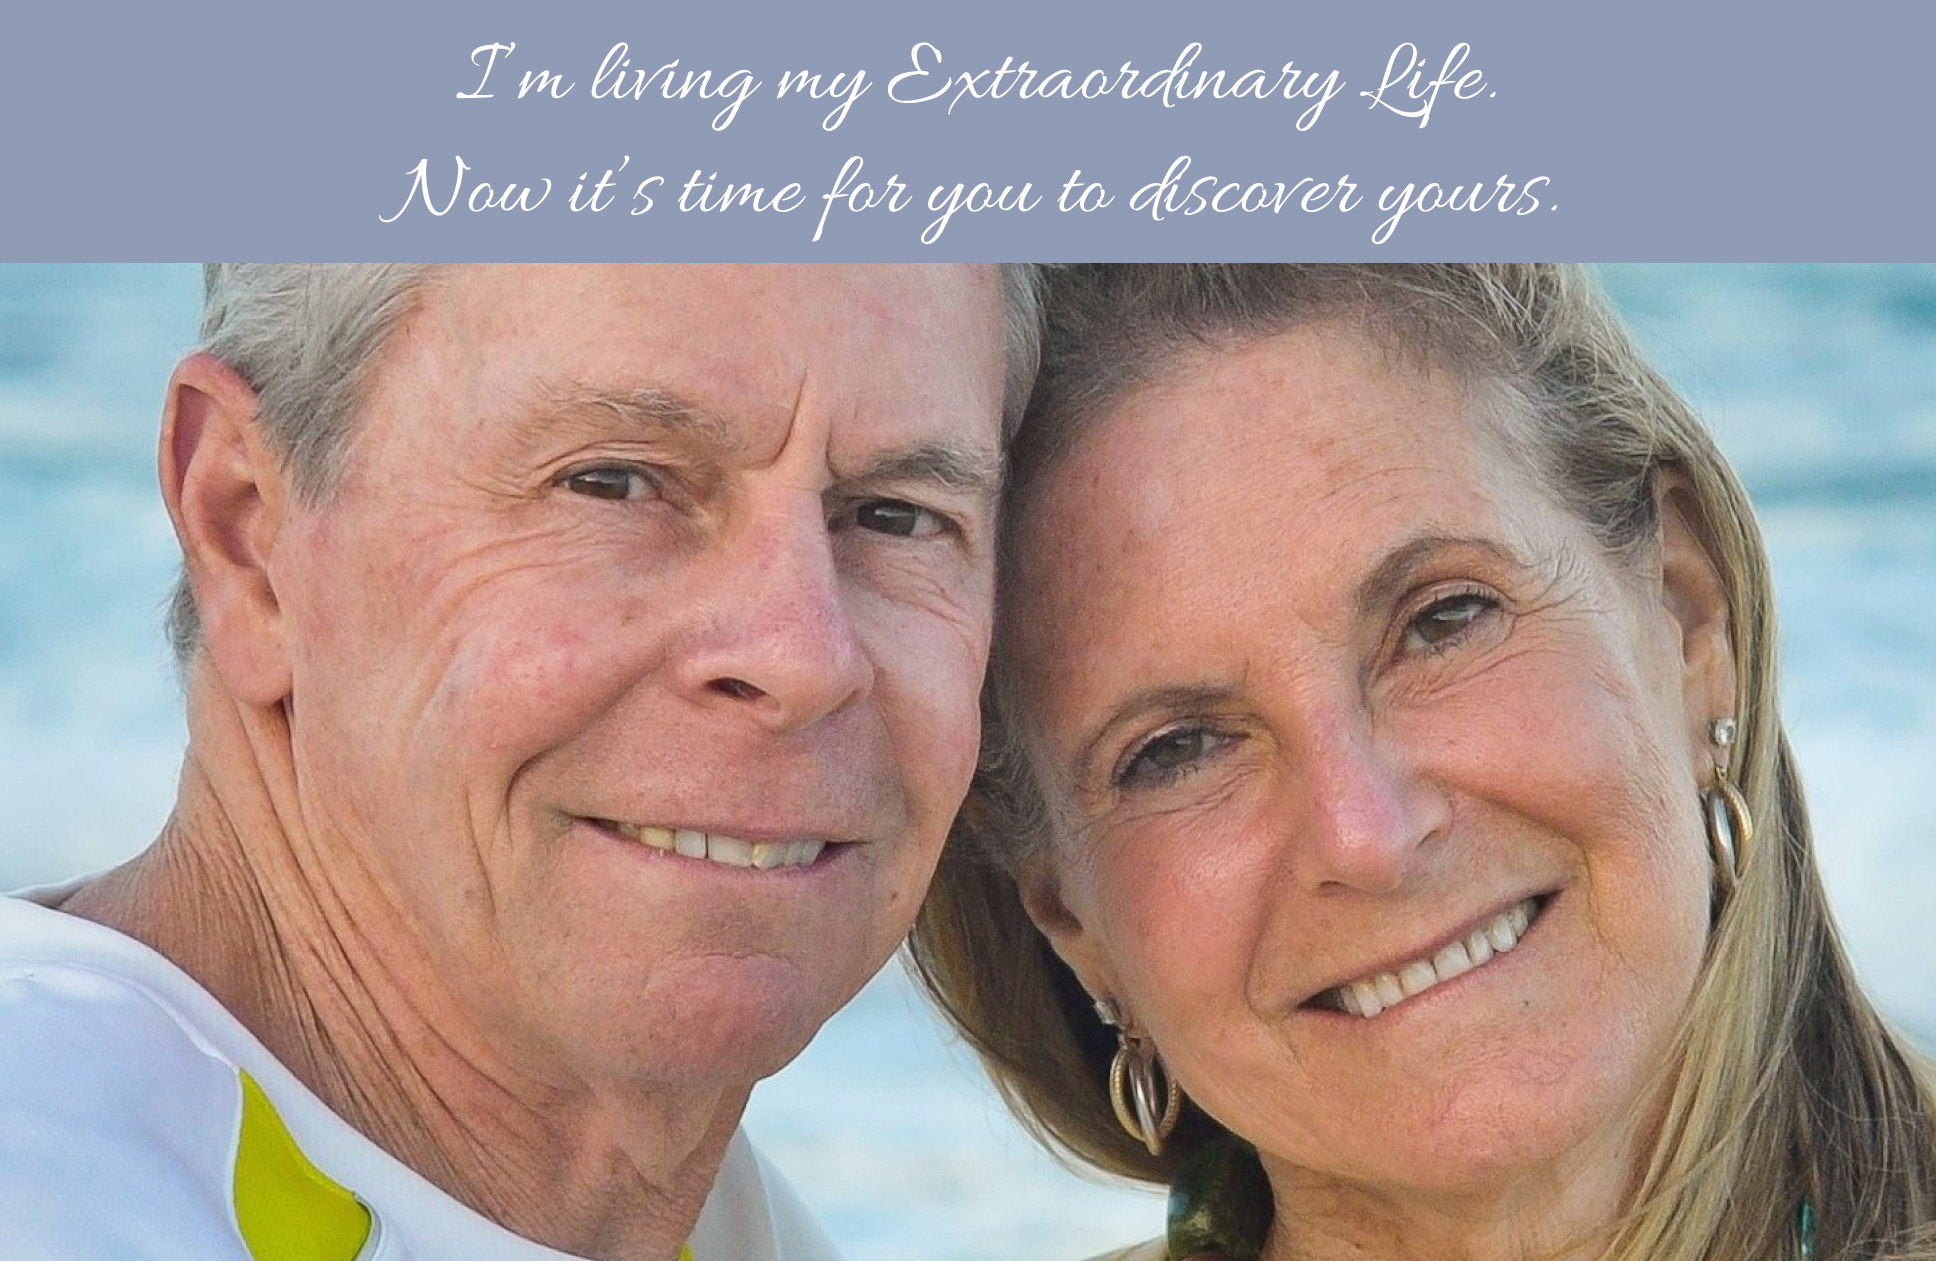 I'm living my Extraordinary Life, Now it's time for you to discover yours